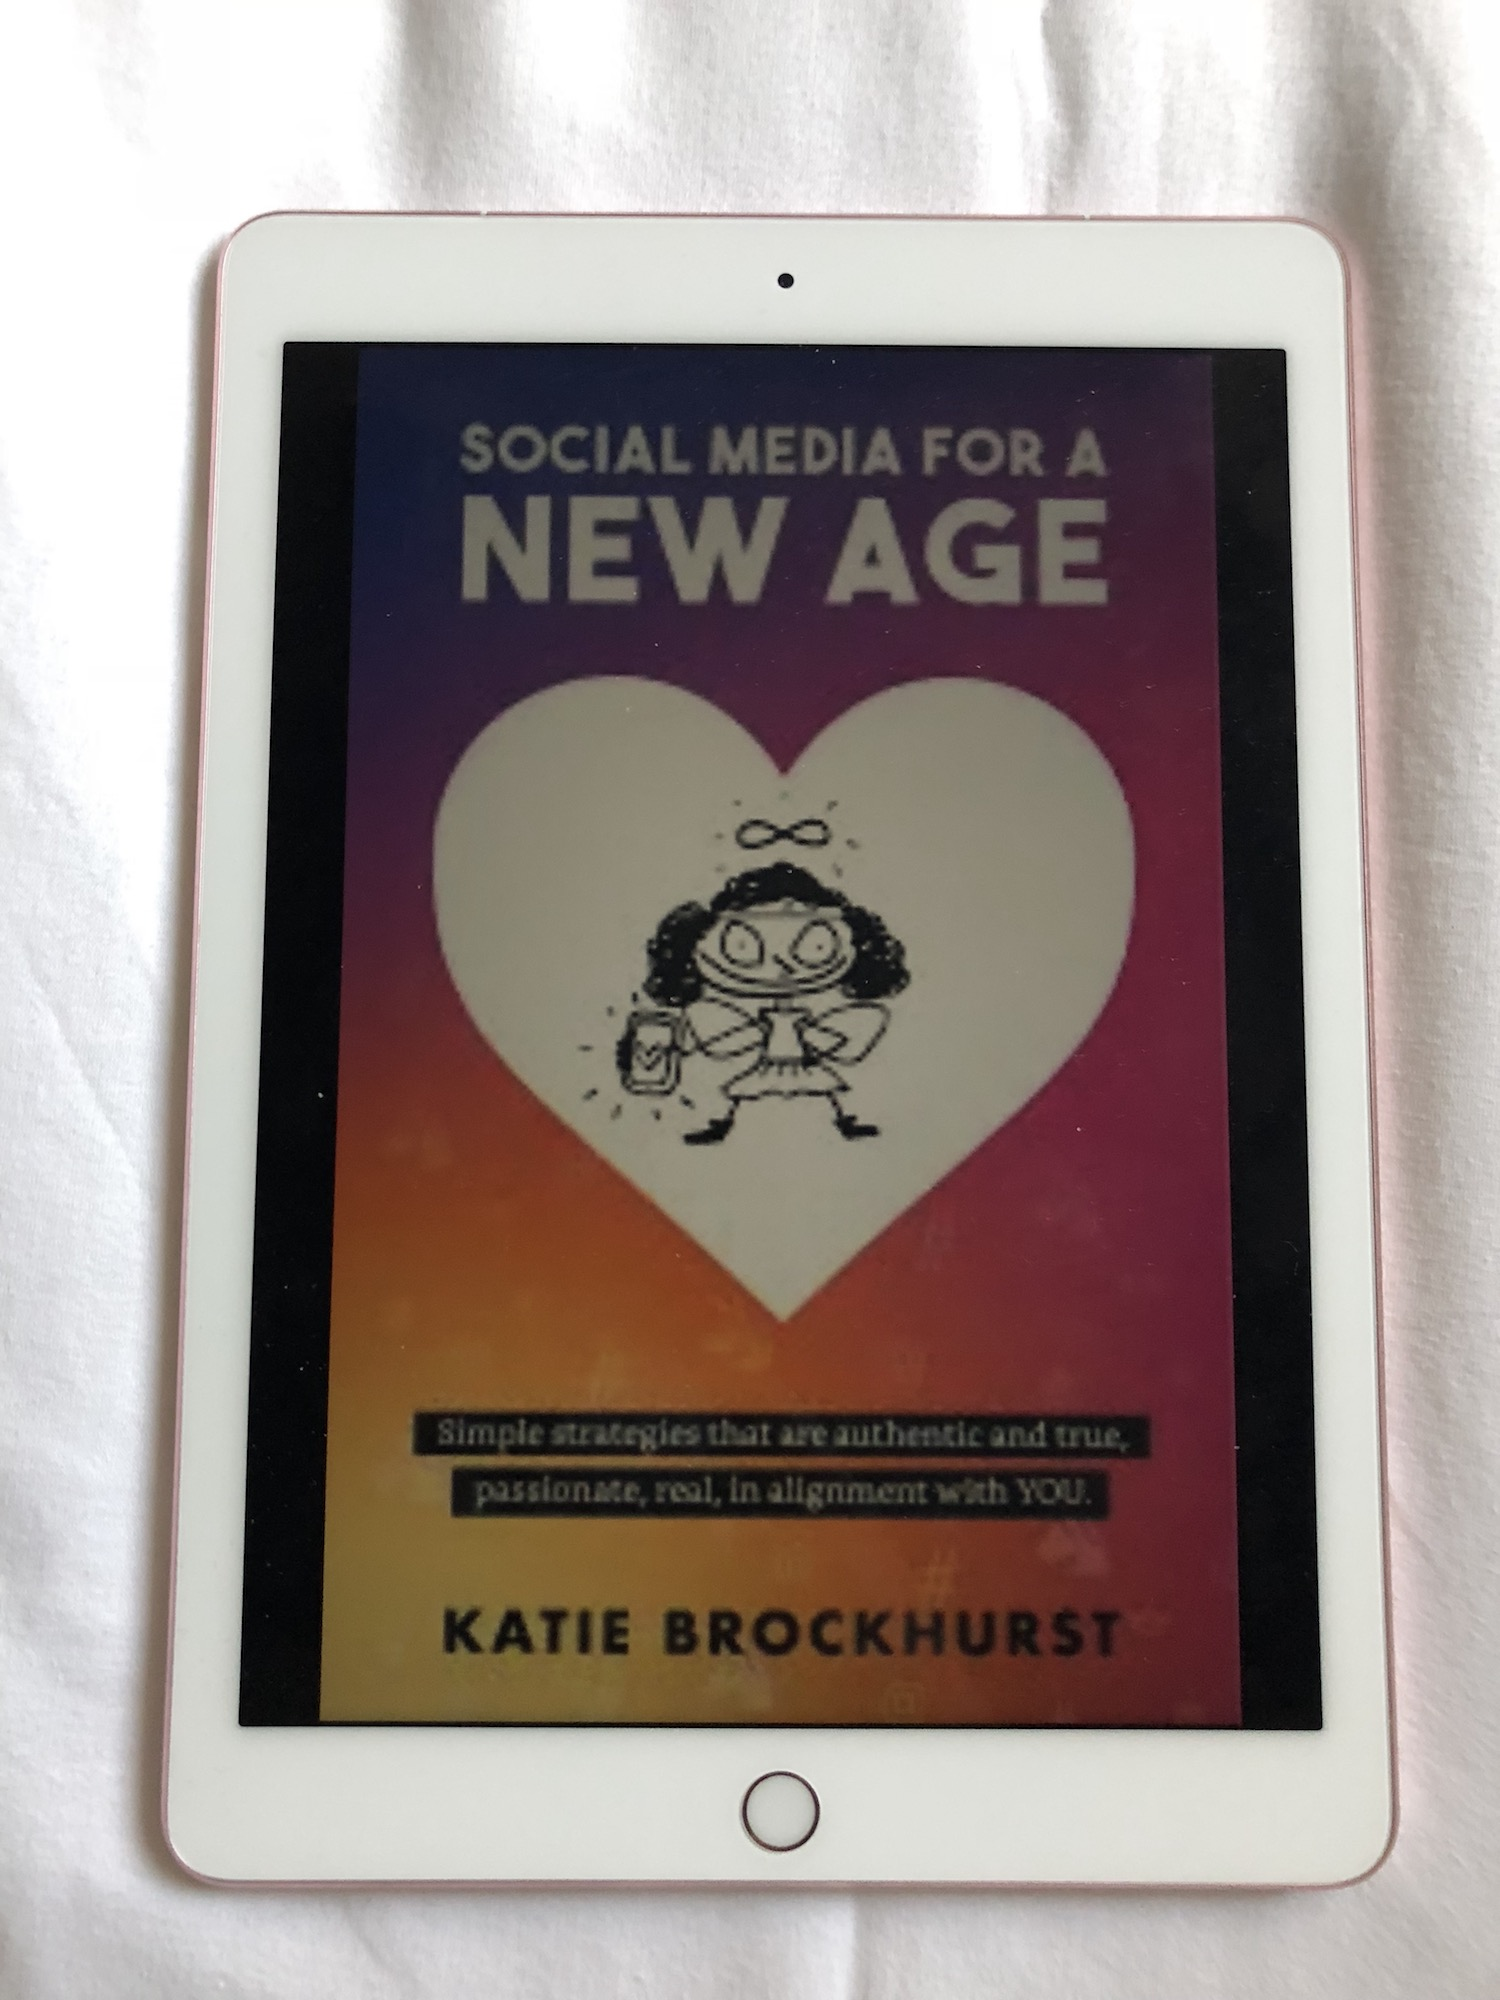 - I cannot recommend this book enough, a new way of looking at using social media and to get the best out of it for you, and to realign your thinking. Not only is Katie lovely but her knowledge and experience is invaluable. A must read for anyone using social media for their work or passion, it's so easy for people to end up feeling negative with social media this book will help.